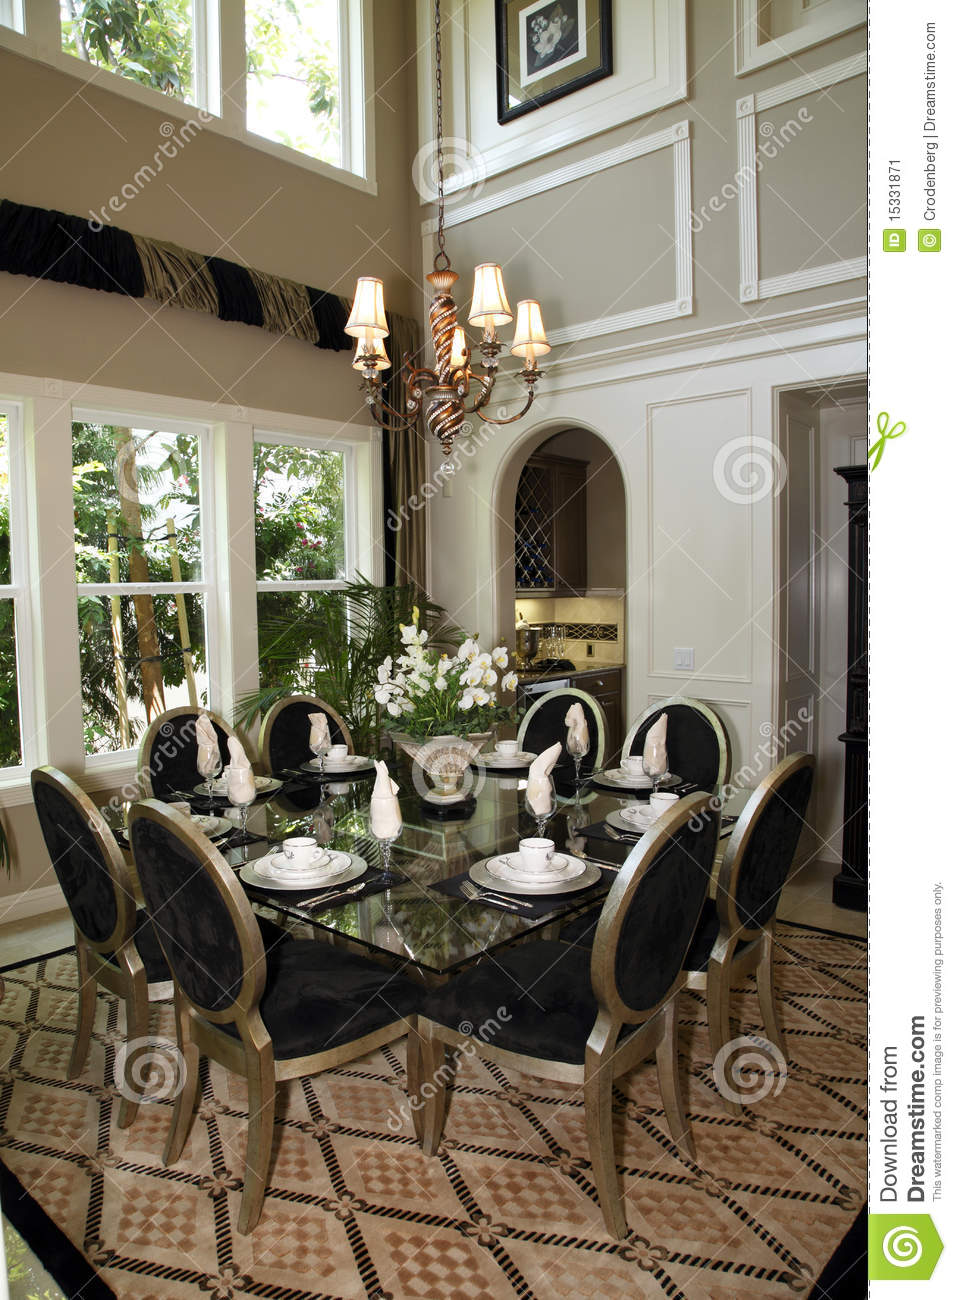 Luxury Home Dining Room Stock Image Image Of Wood